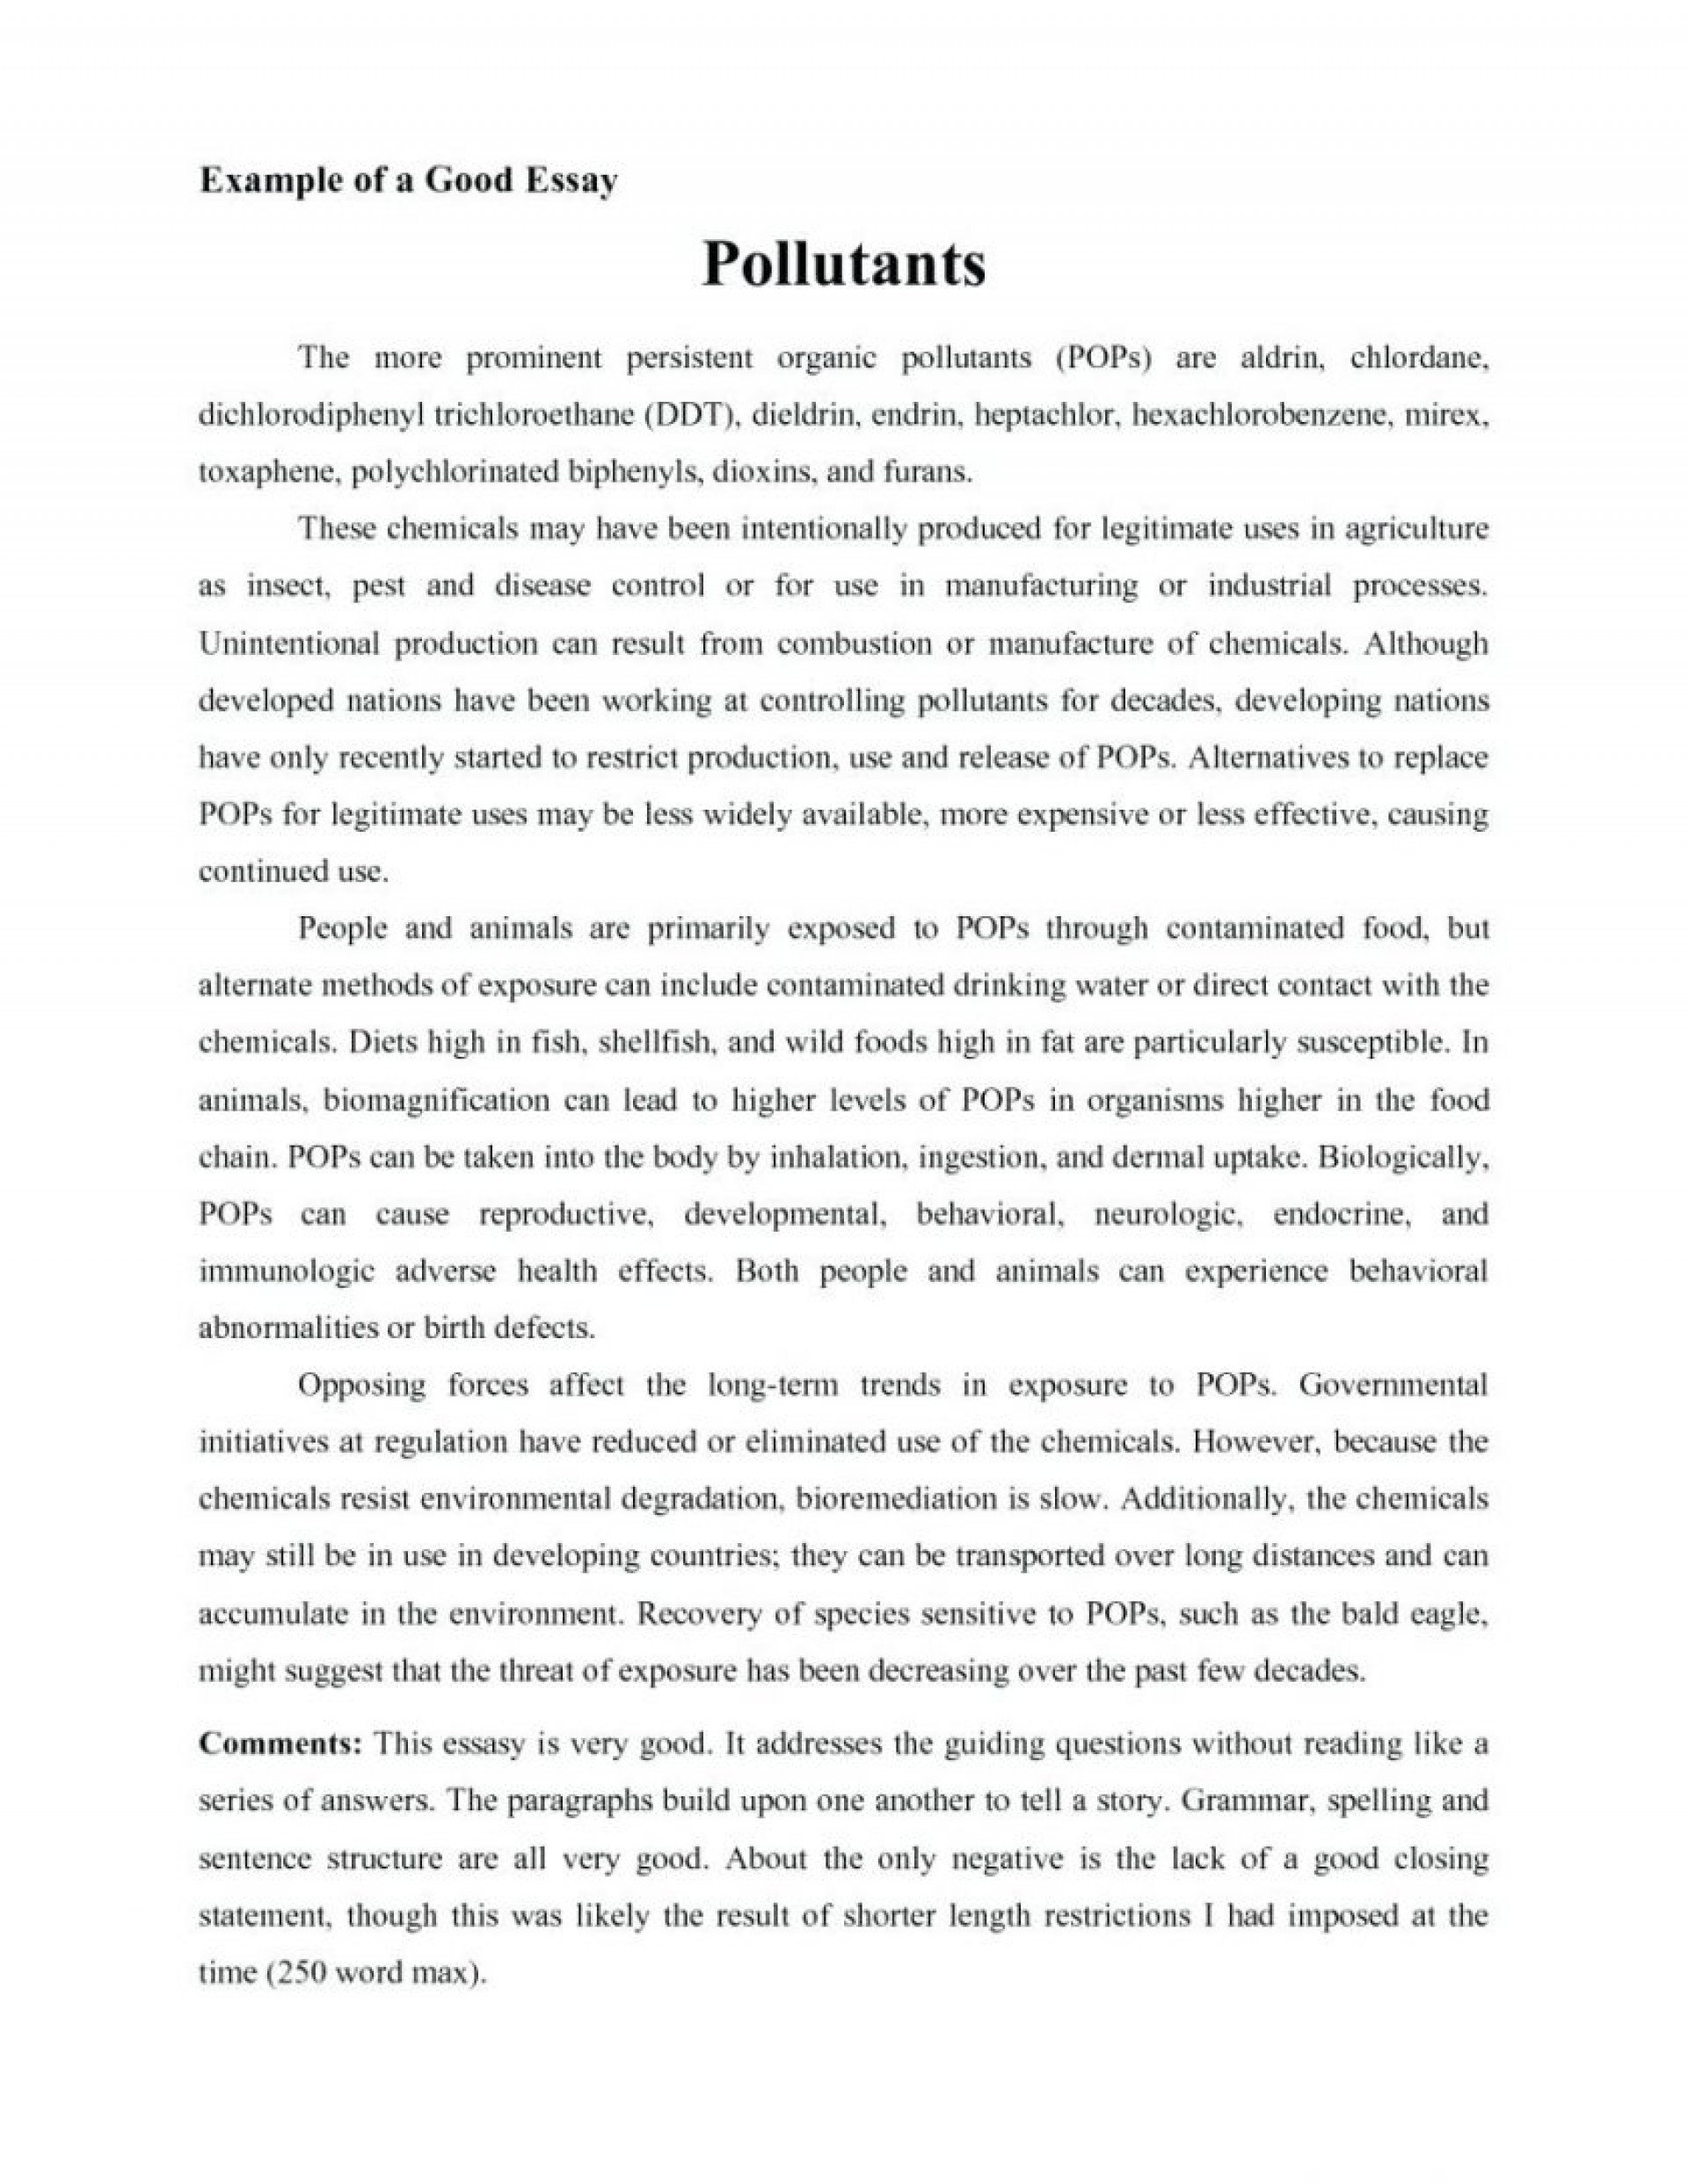 012 Business Topics For Research Paper Examples Of Good Essay How To Write College Easy About Questio Descriptive Informative Synthesissuasive Narrative Awful Administration Franchises 1920